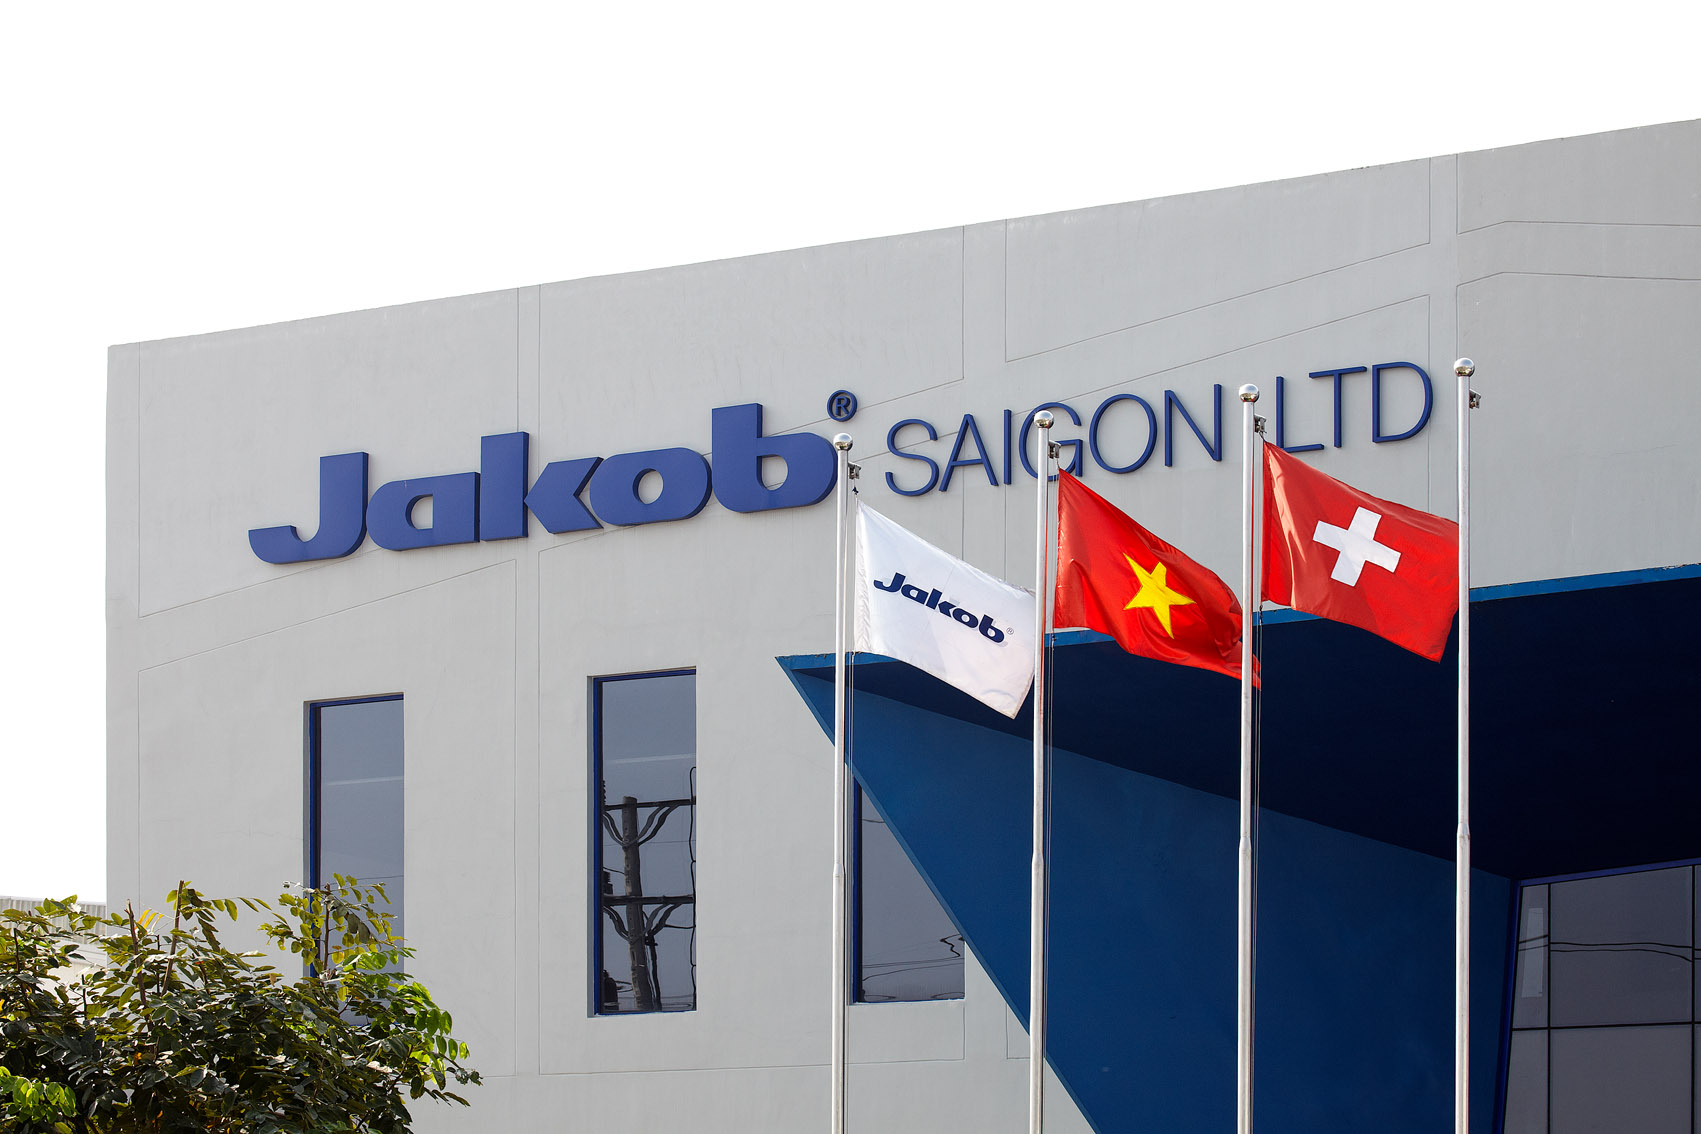 The facade of Jakob Saigon in 2008 with the three flags of Jakob Rope Systems, Vietnam and Switzerland